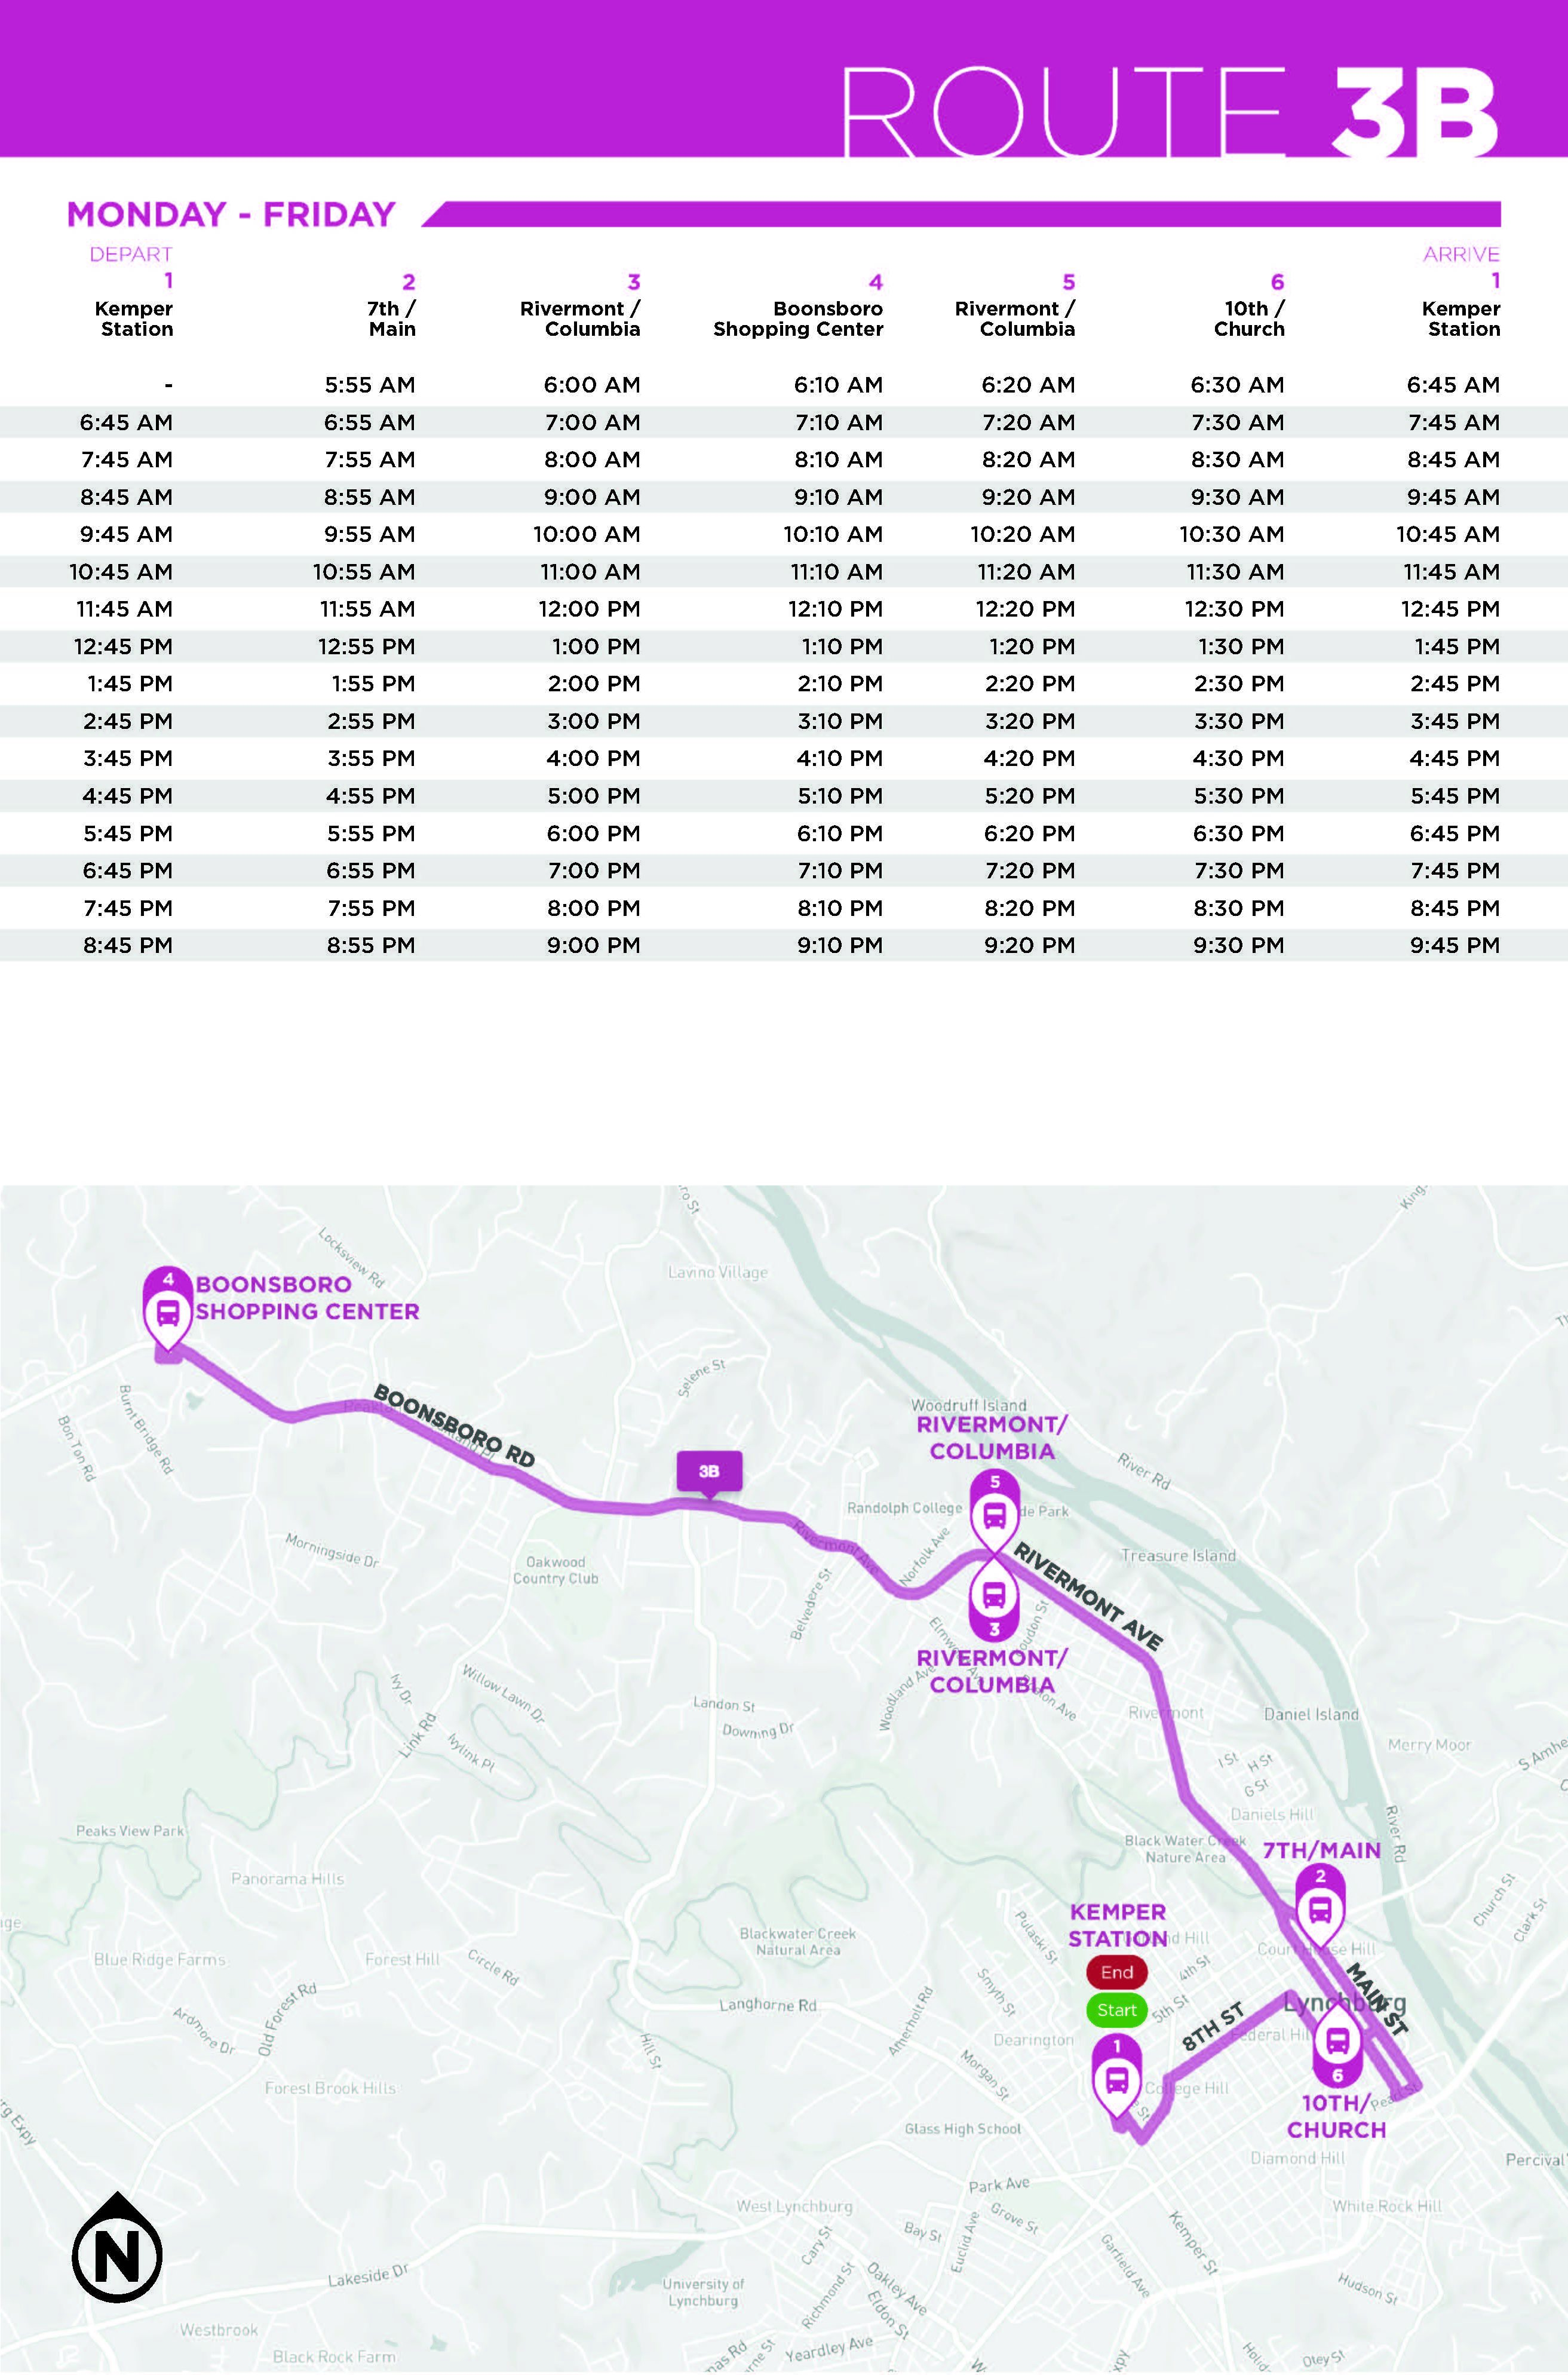 Route 3B Monday - Friday Map and Schedule